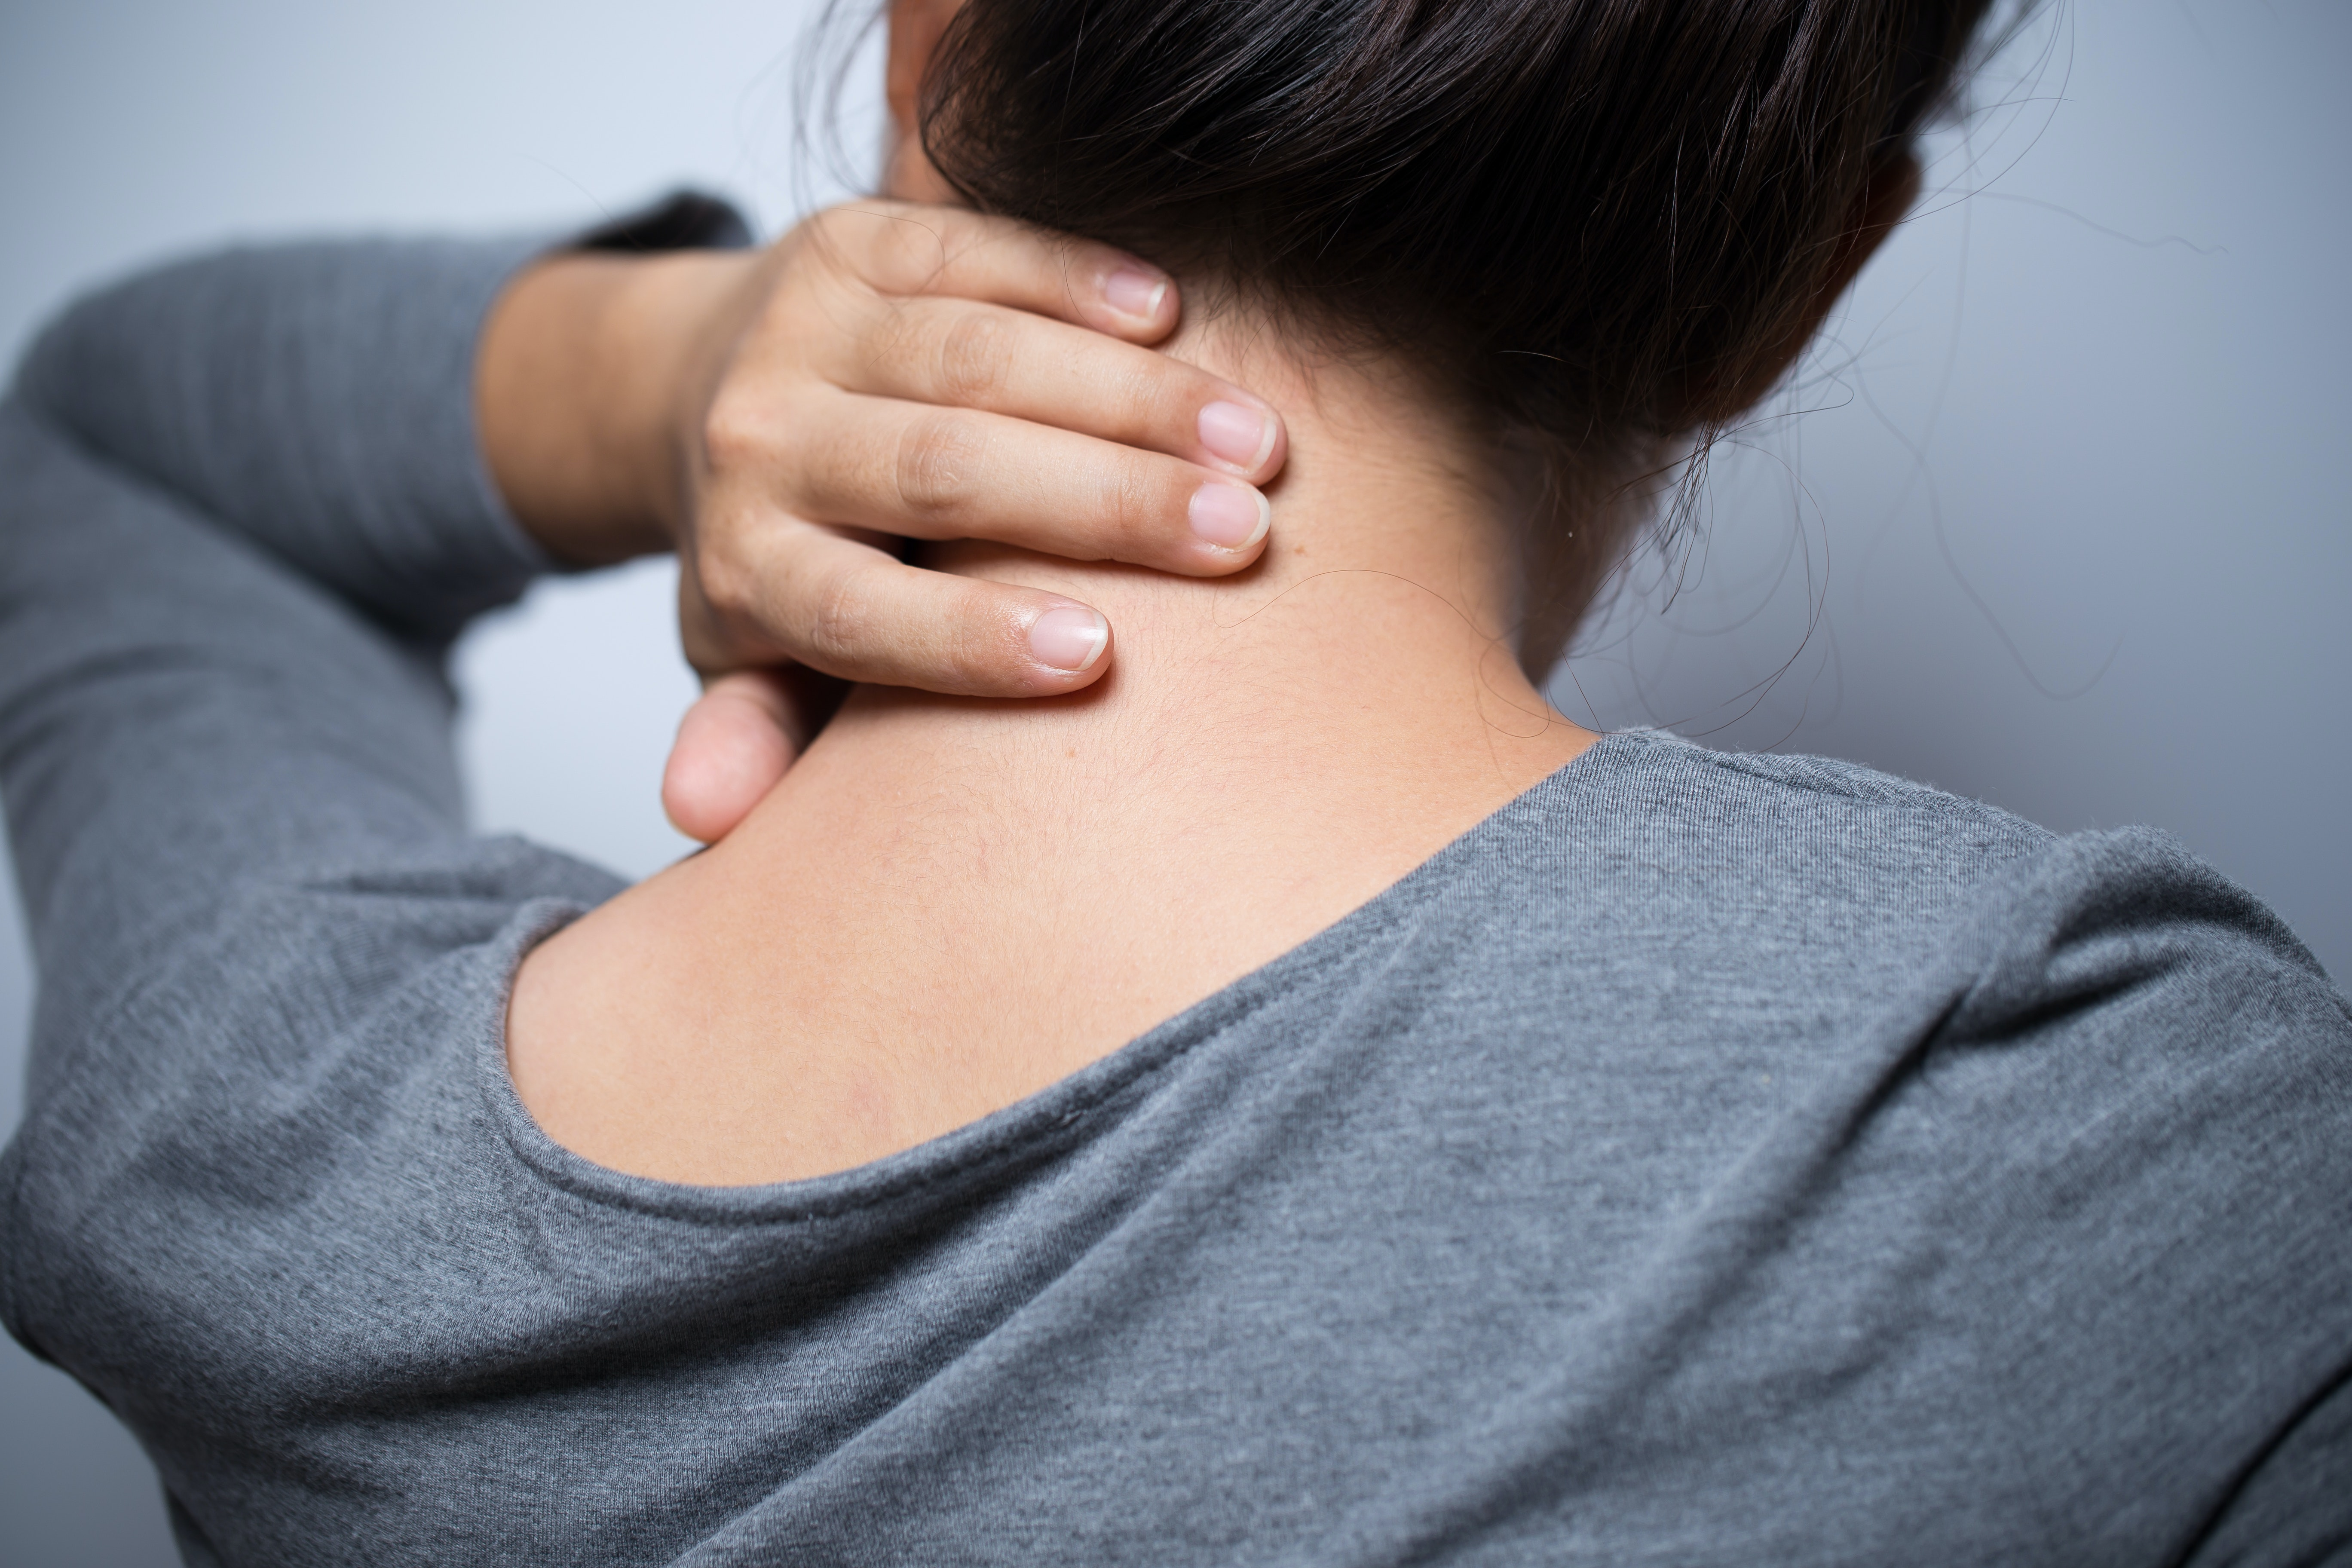 An image depicting a person suffering from painful neck lump symptoms